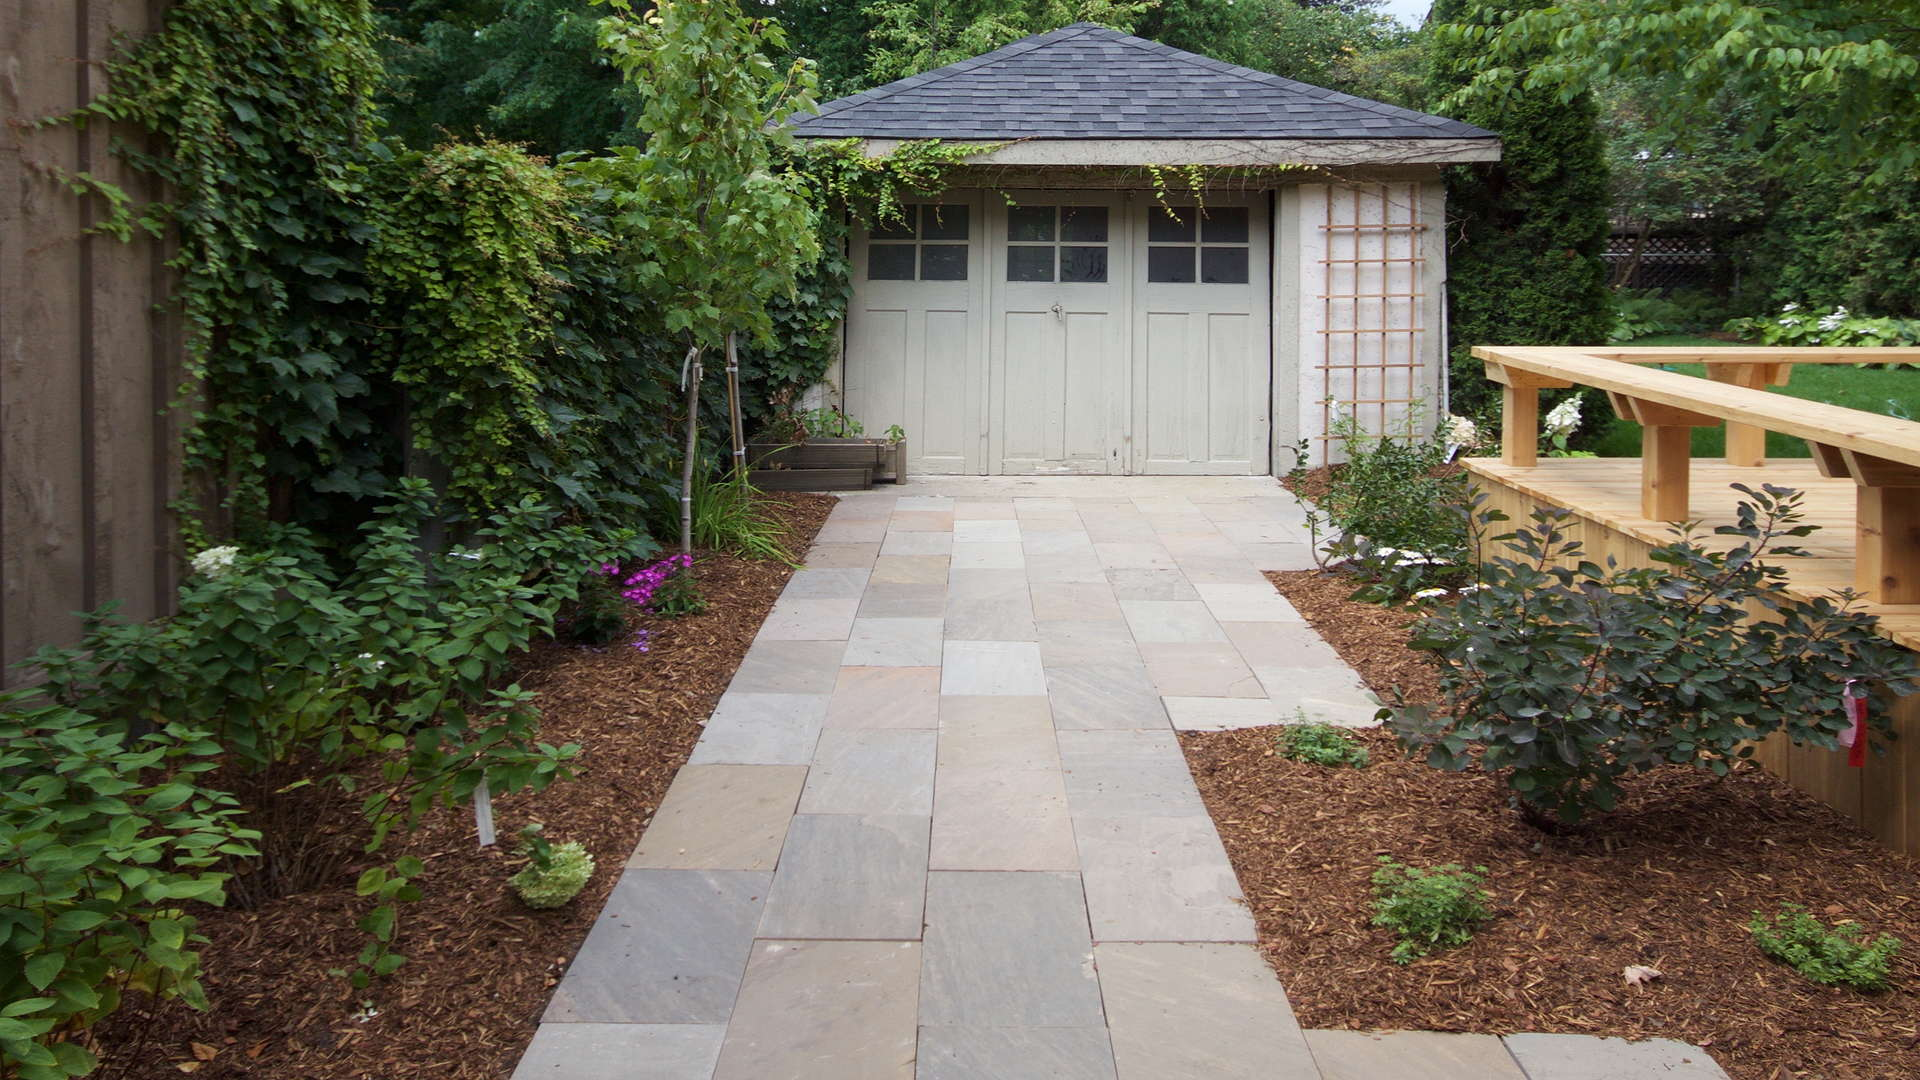 Stone slab driveway and landscape. Modern landscaping project in London Ontario.